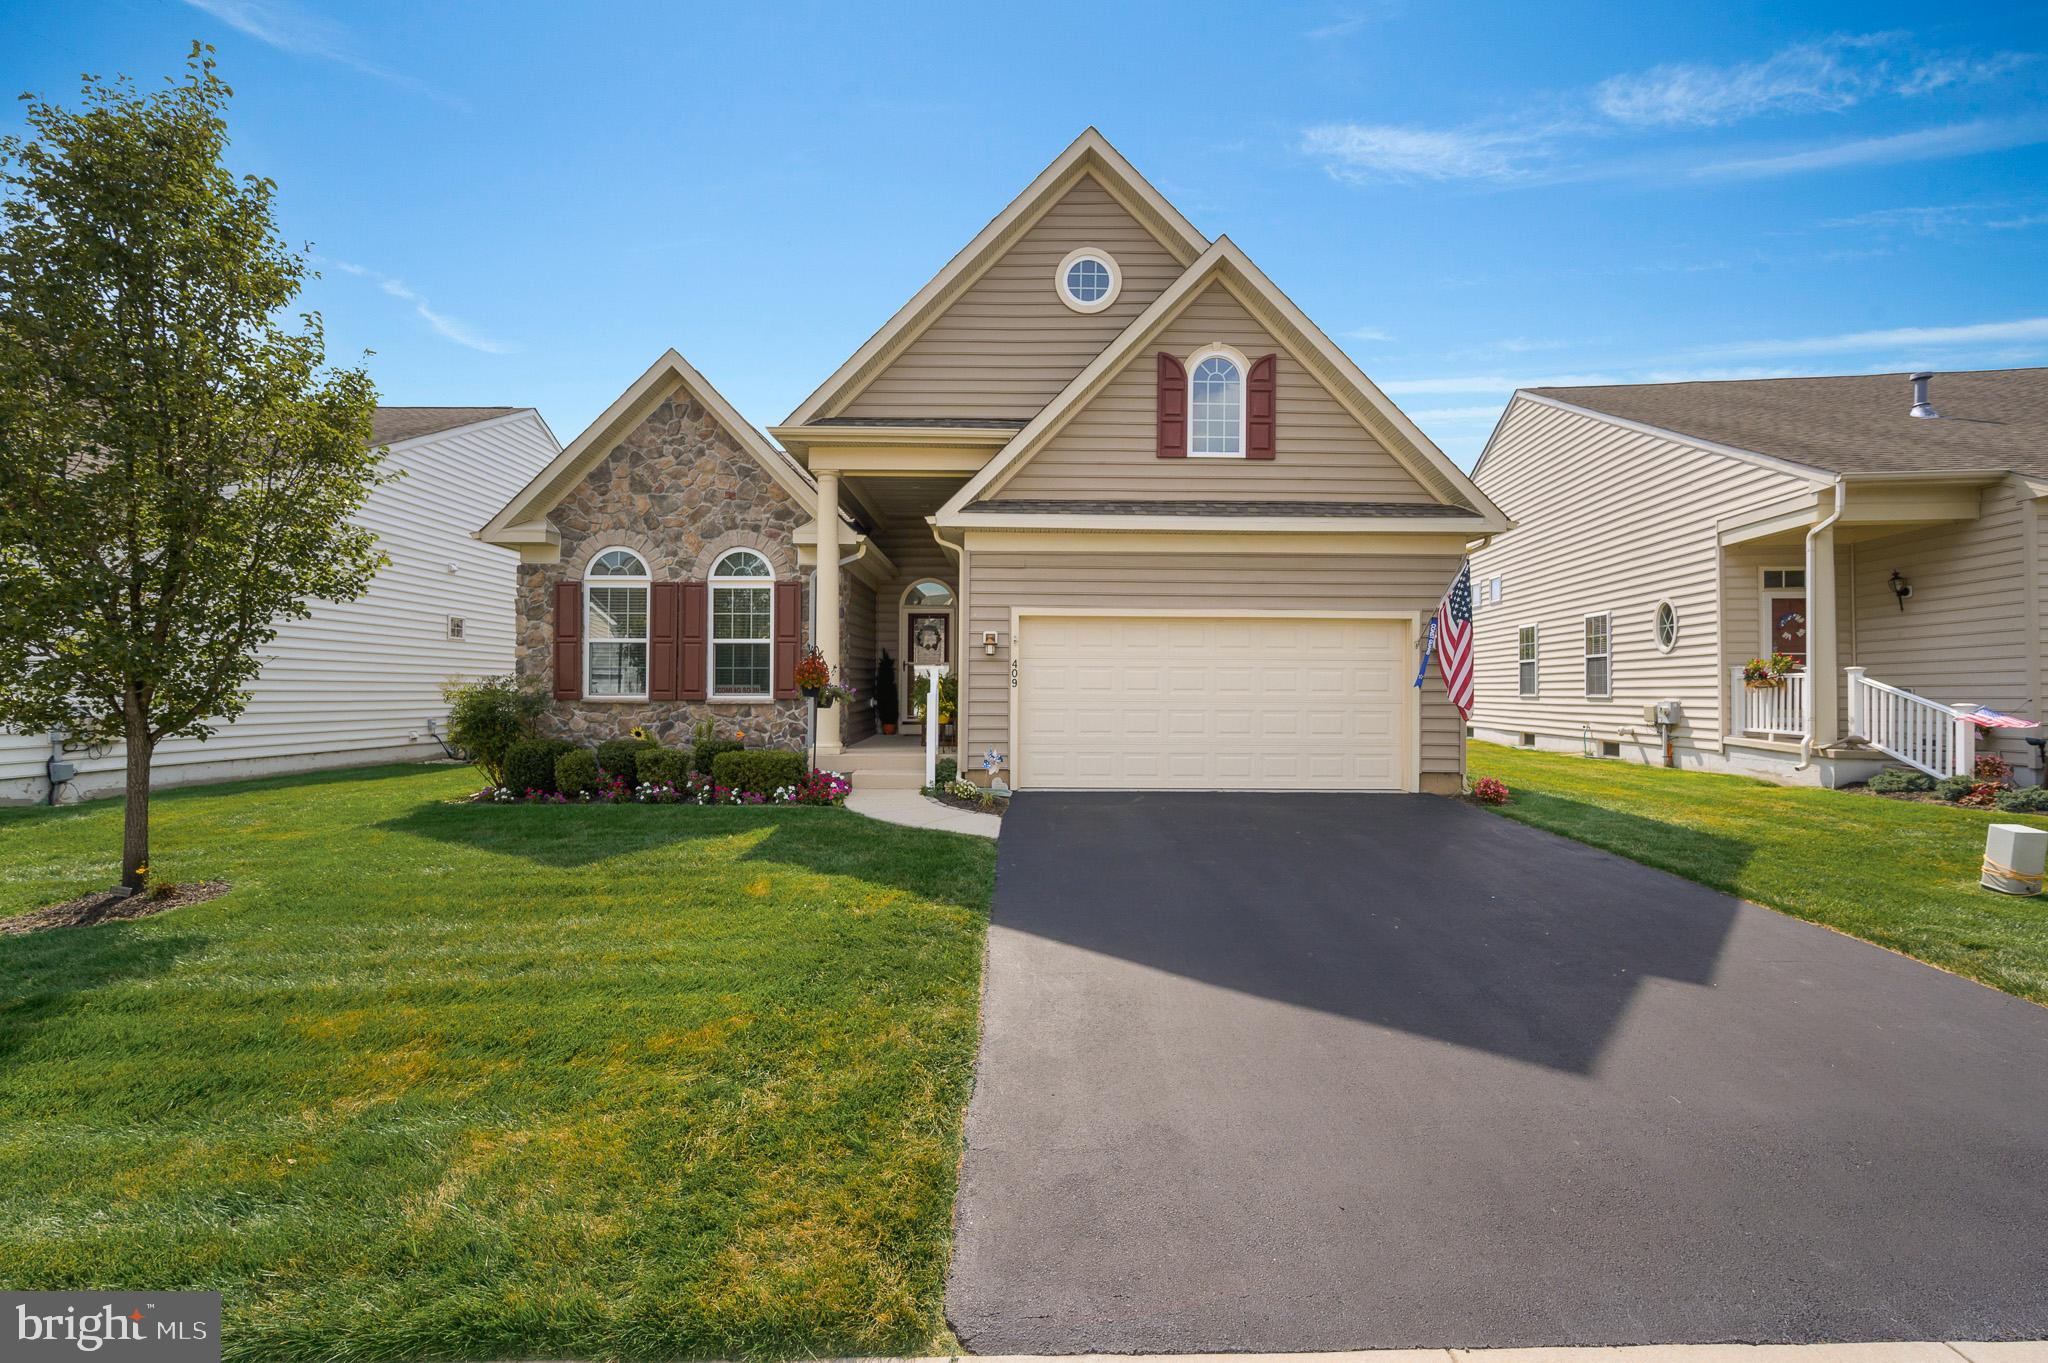 Visit this home virtually: http://www.vht.com/434092453/IDXS - Welcome Home! Situated in the highly